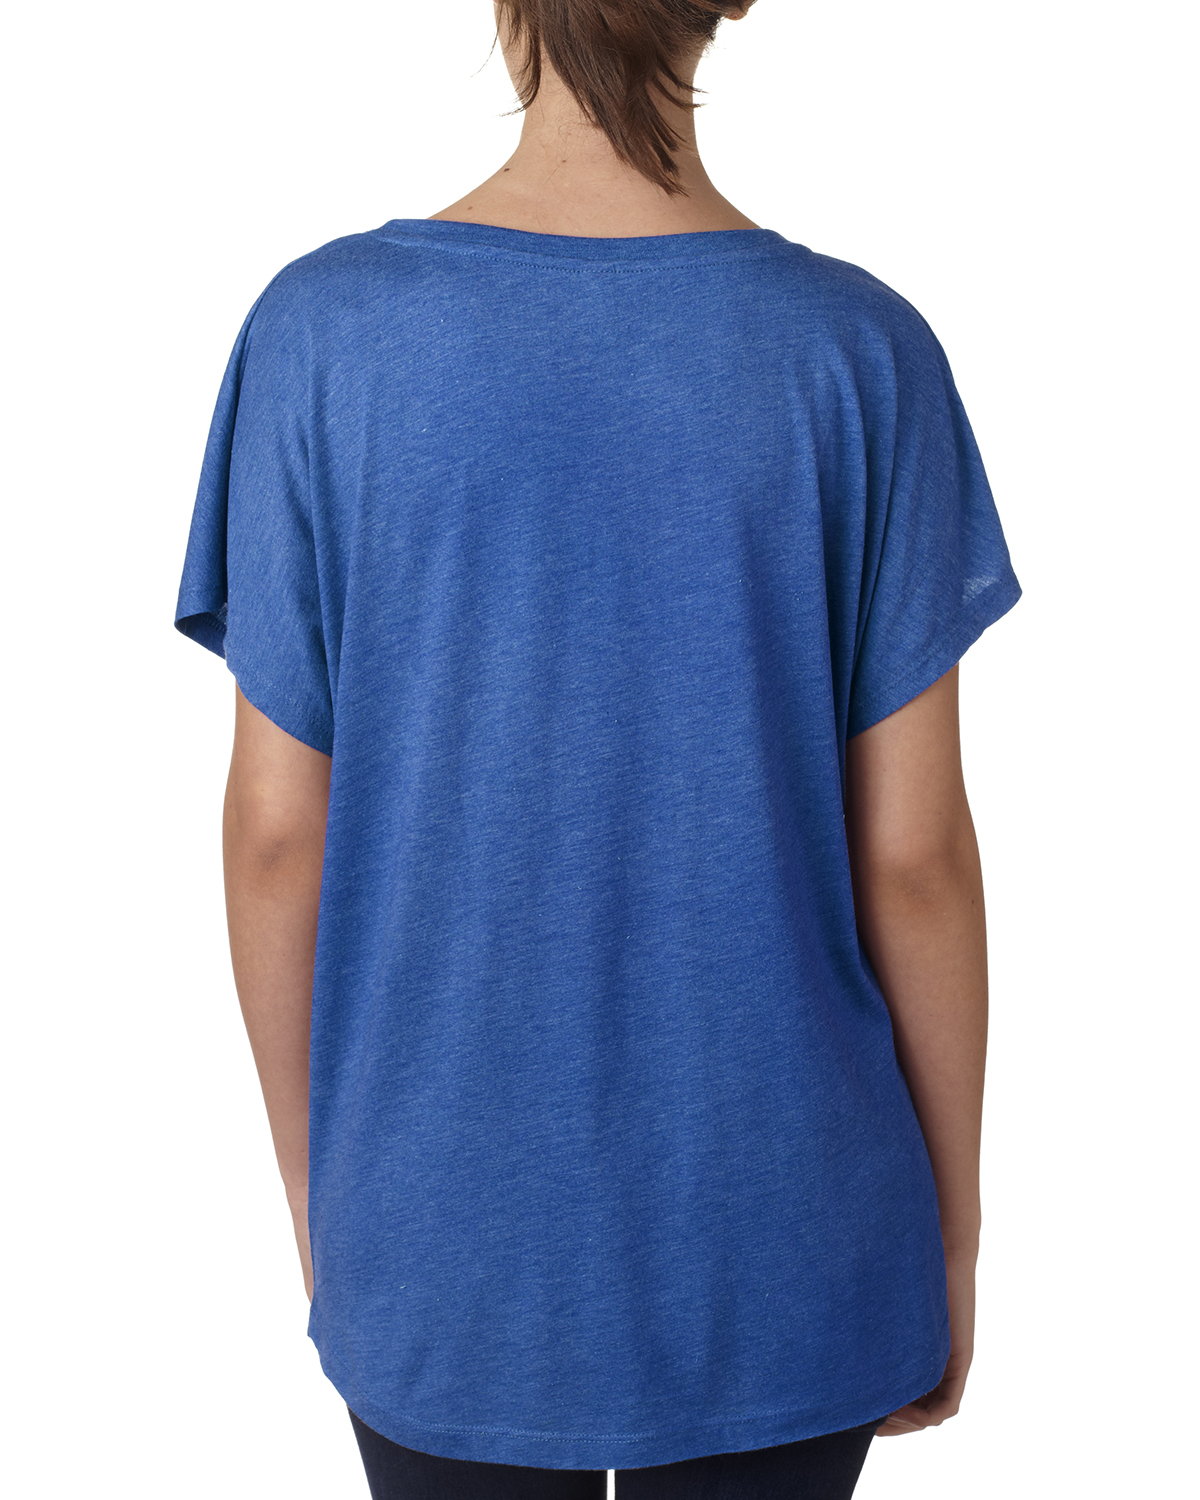 NEW-Next-Level-Junior-Fit-Triblend-Dolman-Sleeve-Relexed-Fit-T-Shirt-B-6760 thumbnail 42